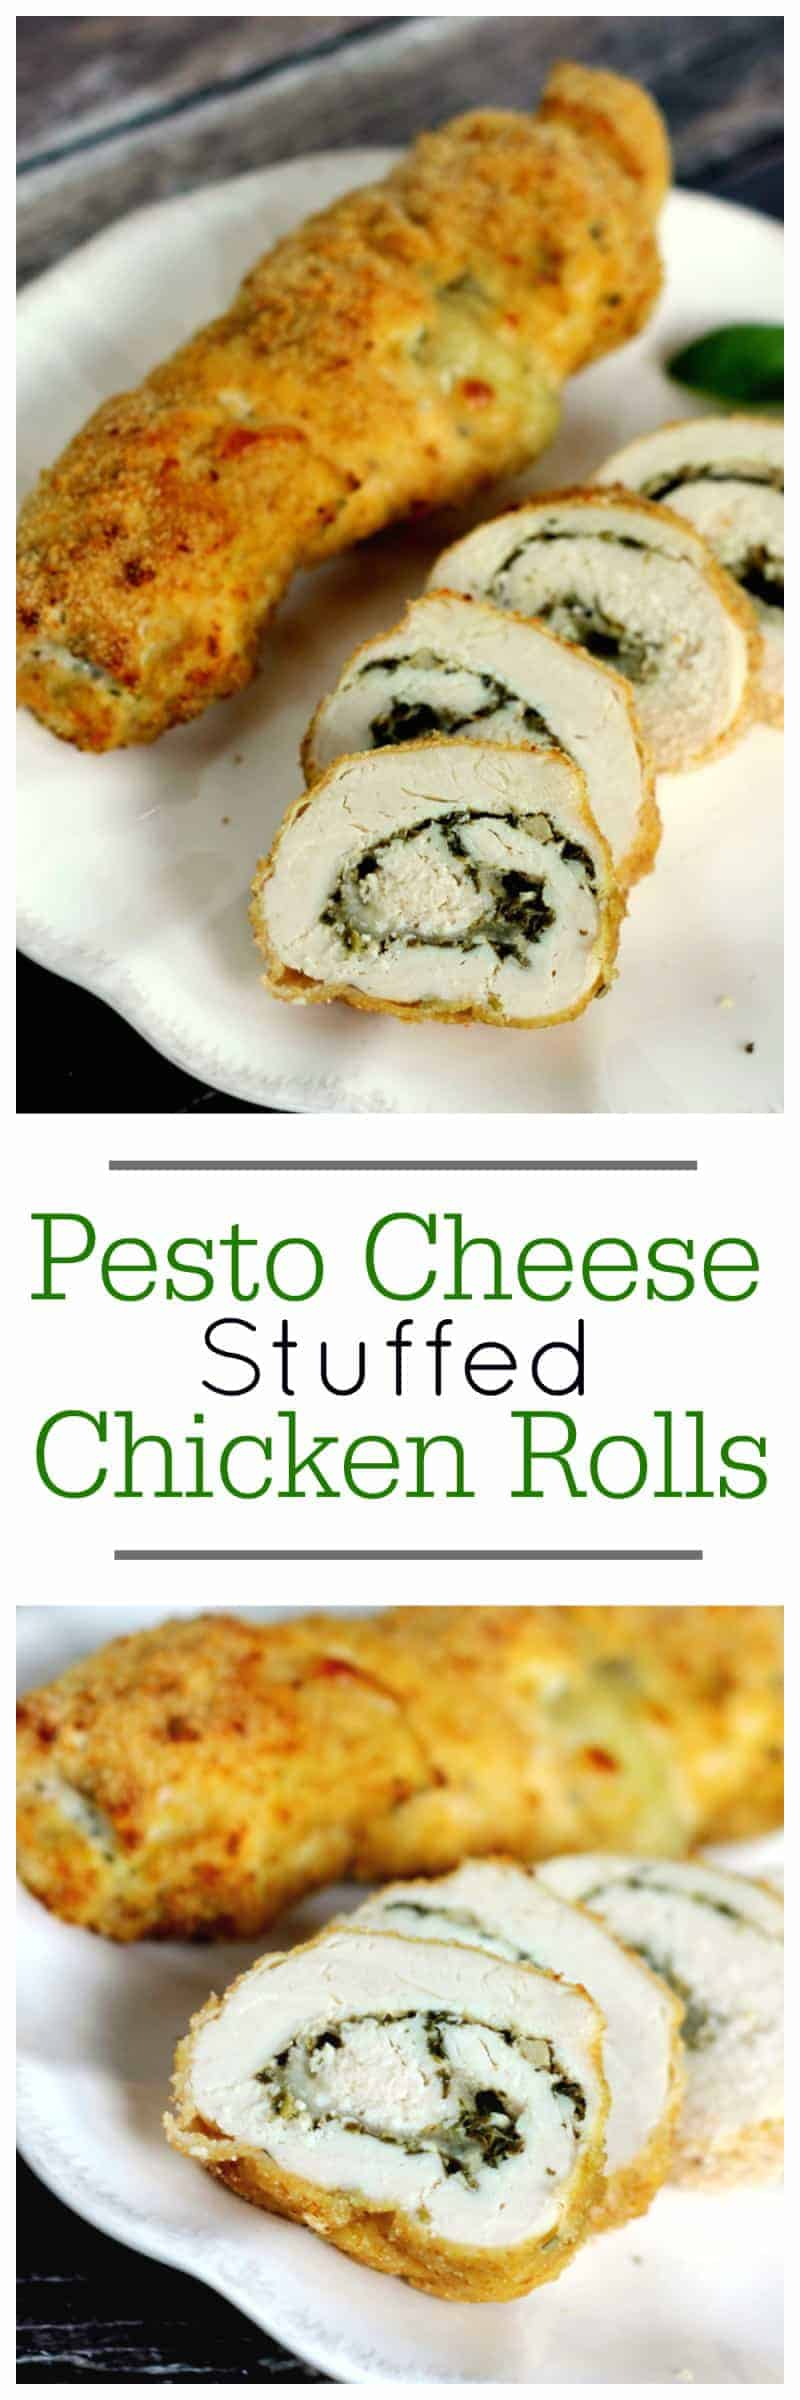 pesto cheese stuffed chicken rolls main dish recipe